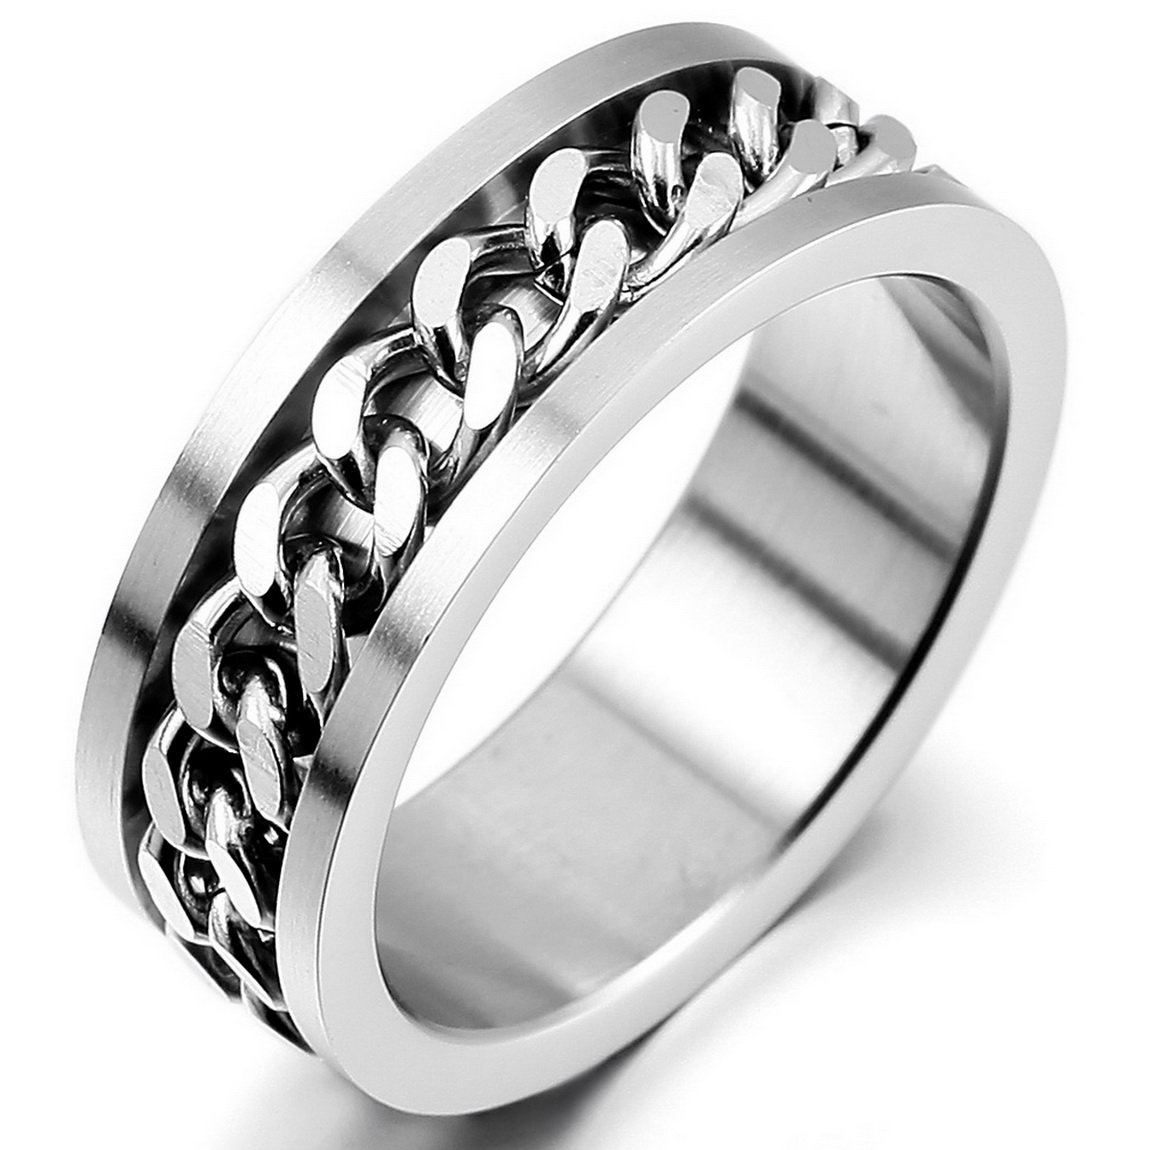 INBLUE Men's Stainless Steel Ring Band Silver Tone Chain Wedding INBLUE Jewelry mne408-2-parent